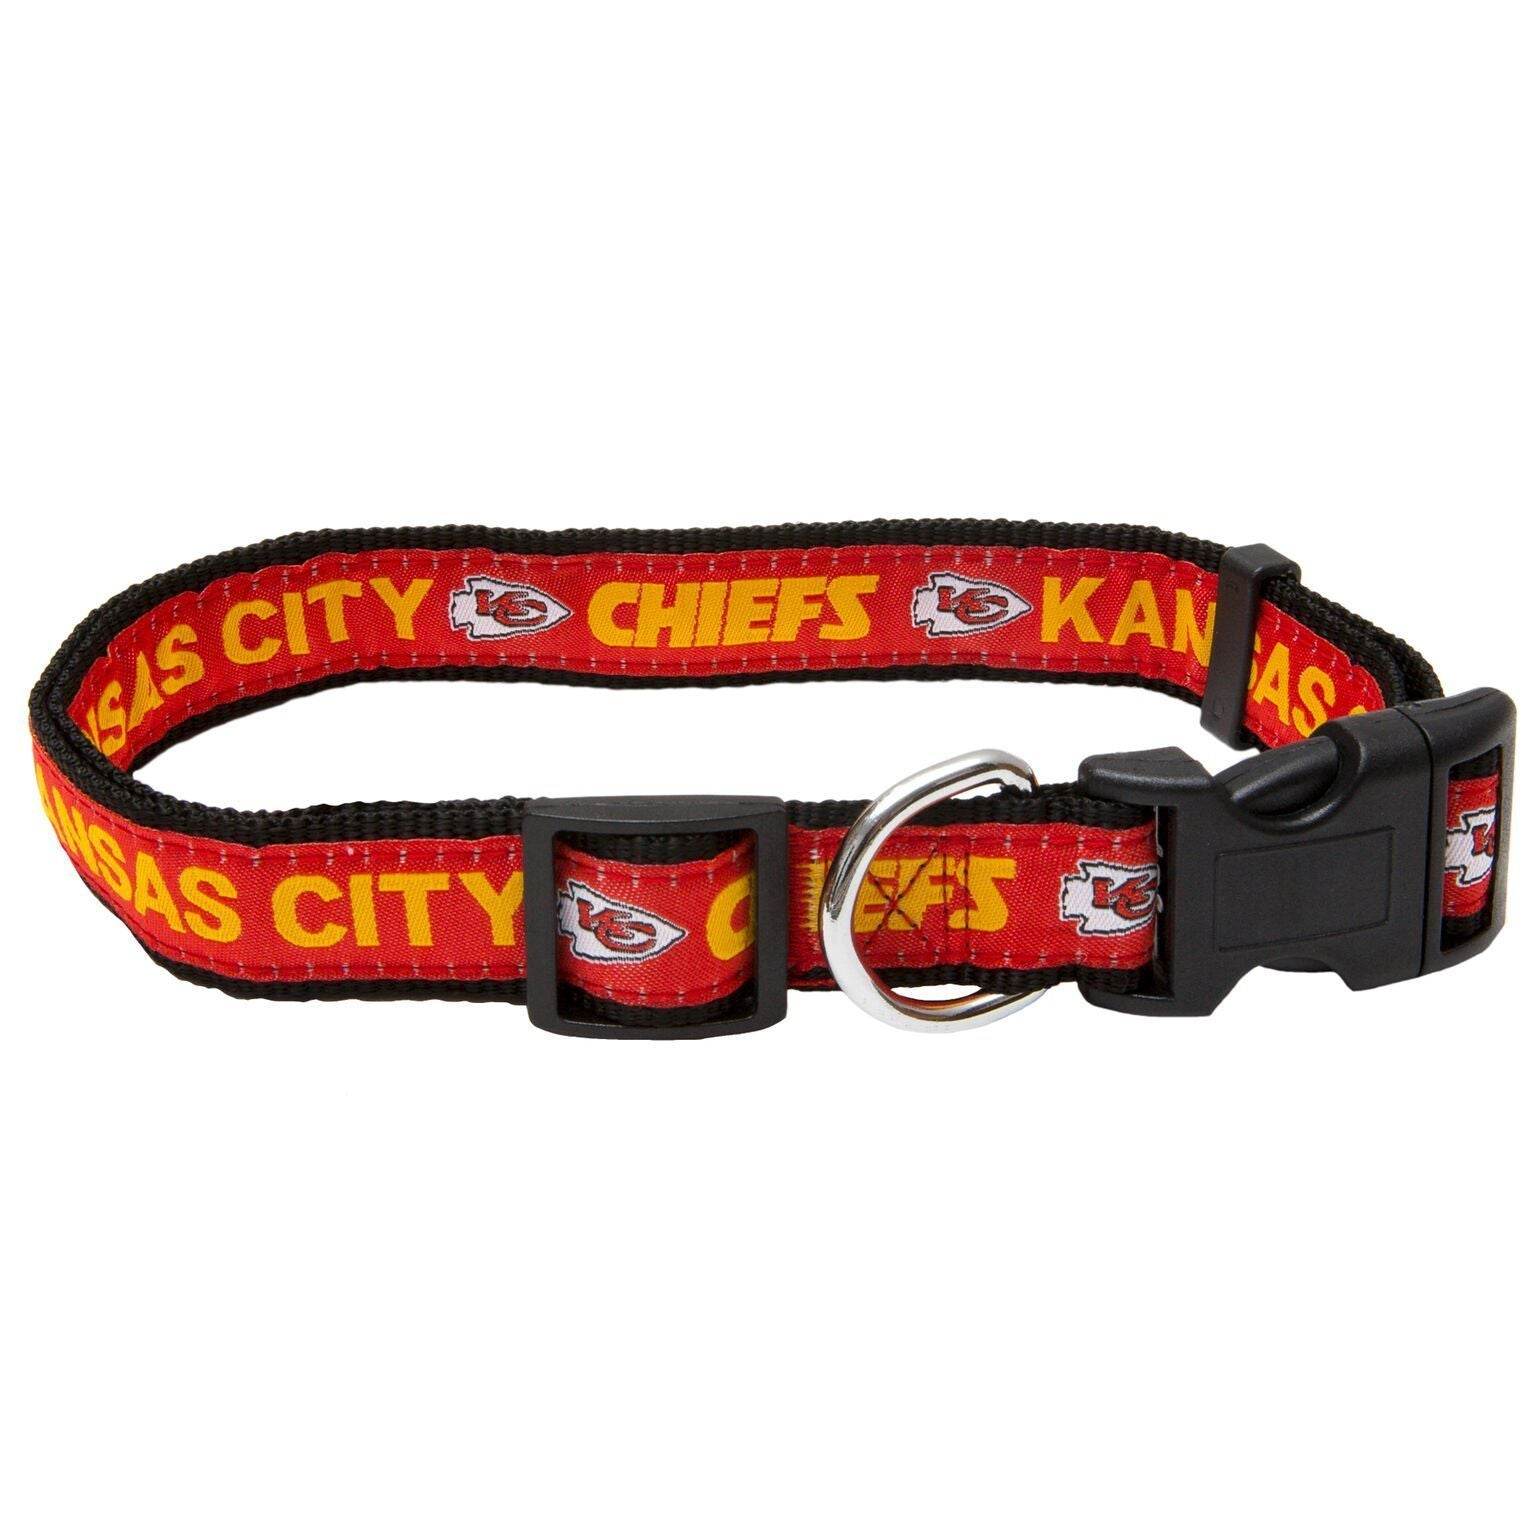 Kansas City Chiefs Football Jersey Cheerleading Uniform Collar Leash